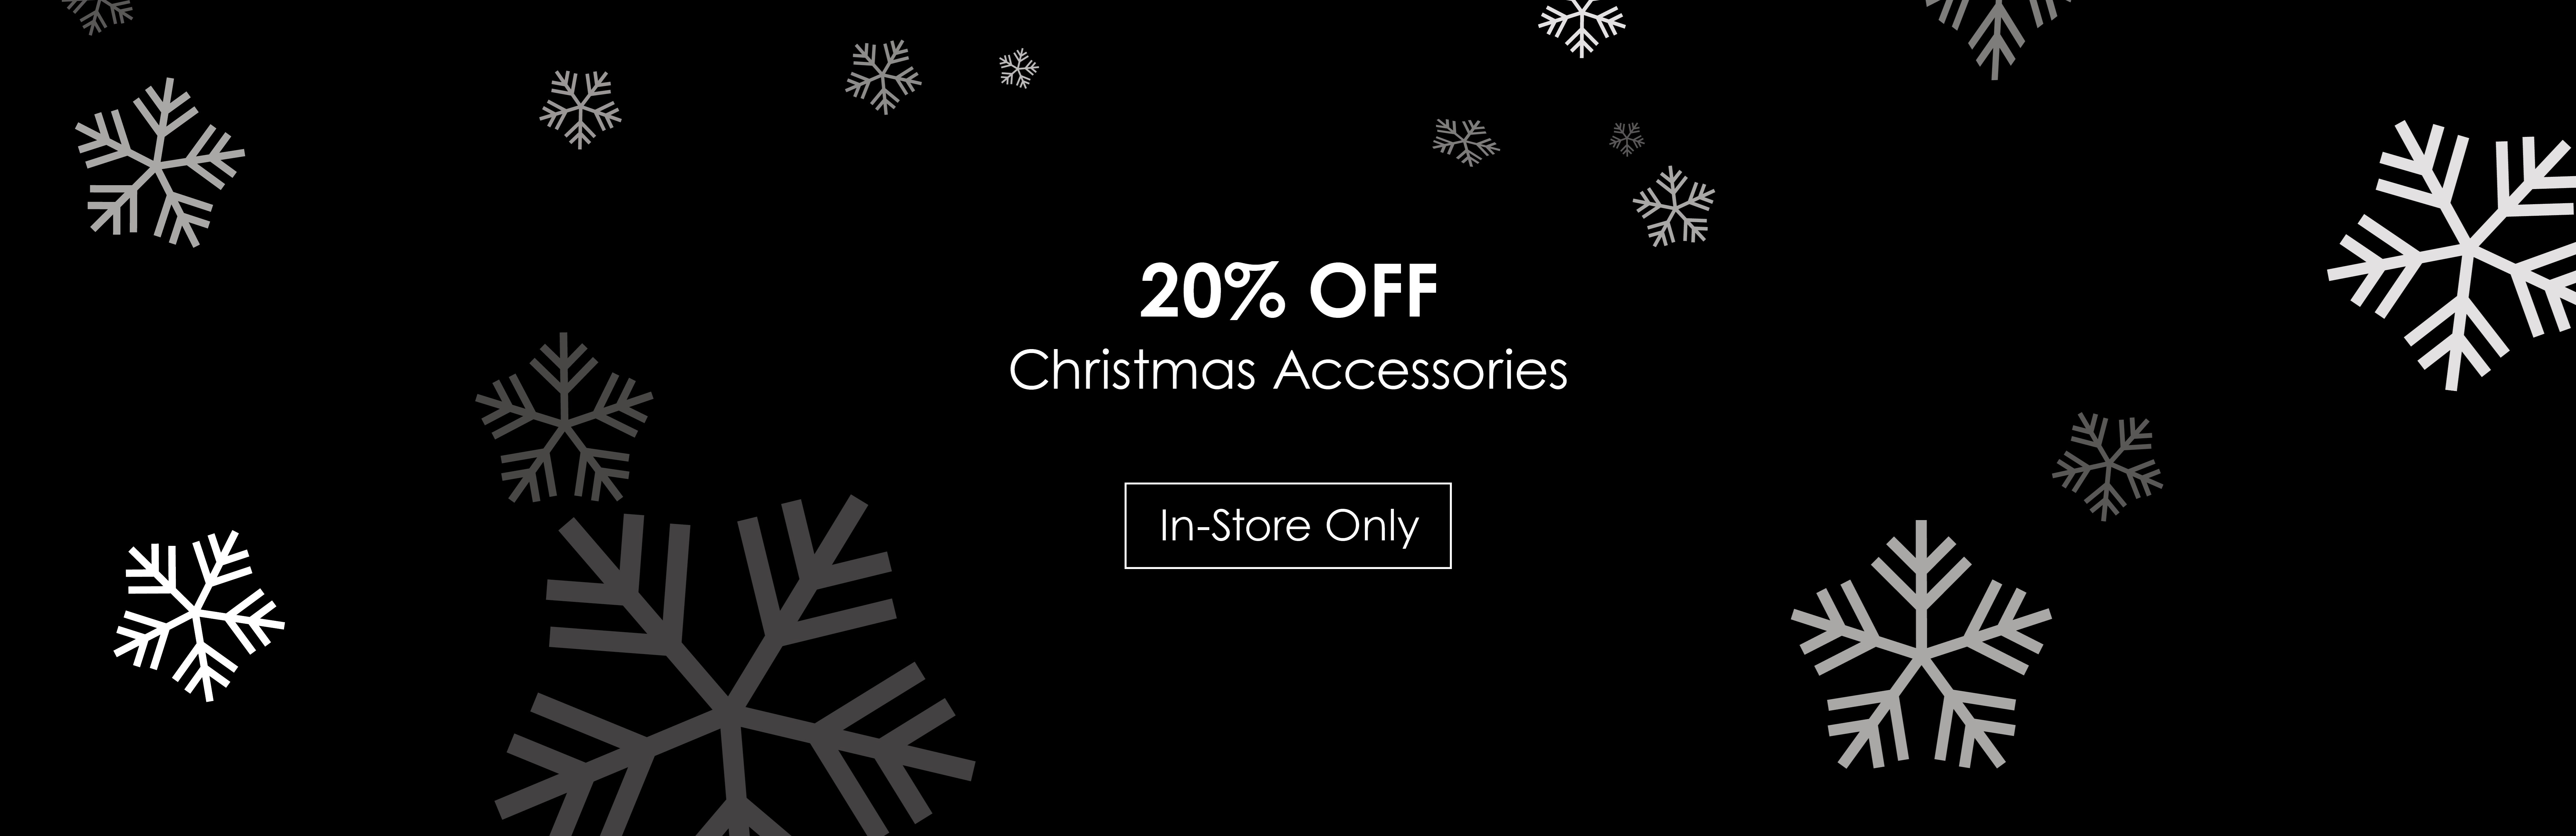 20% off Christmas Accessories